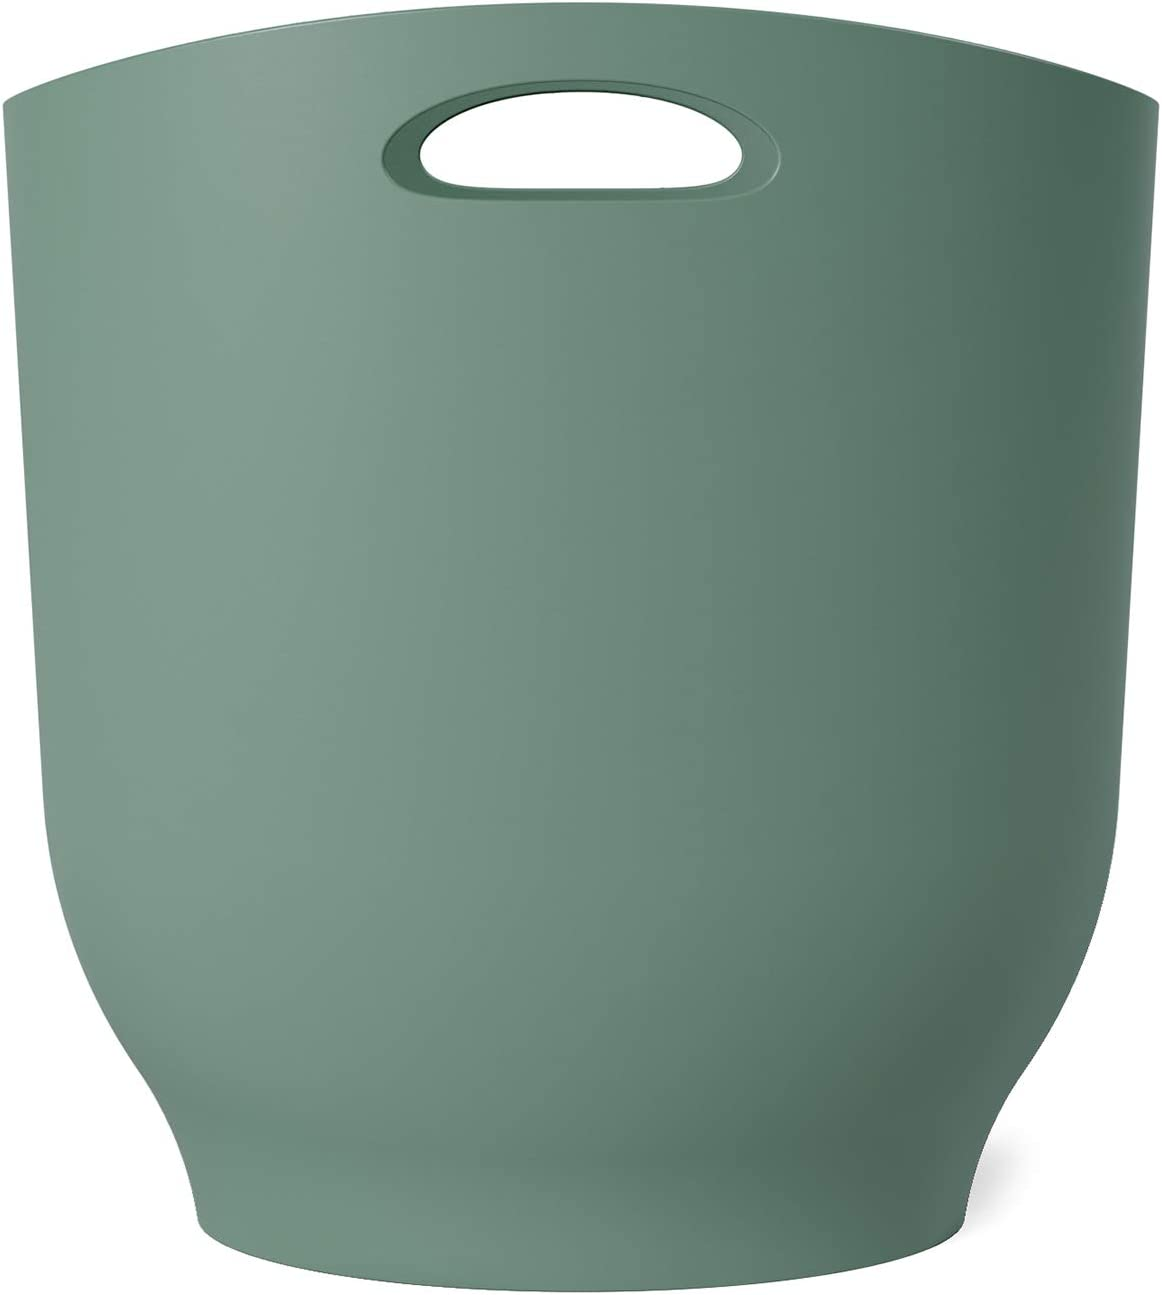 Umbra 1012181-1095 , Spruce Harlo Sleek & Stylish Bathroom Trash, Small Garbage Can Wastebasket for Narrow Spaces at Home or Office, 2.4 Gallon Capacity,7 x 13 x 12